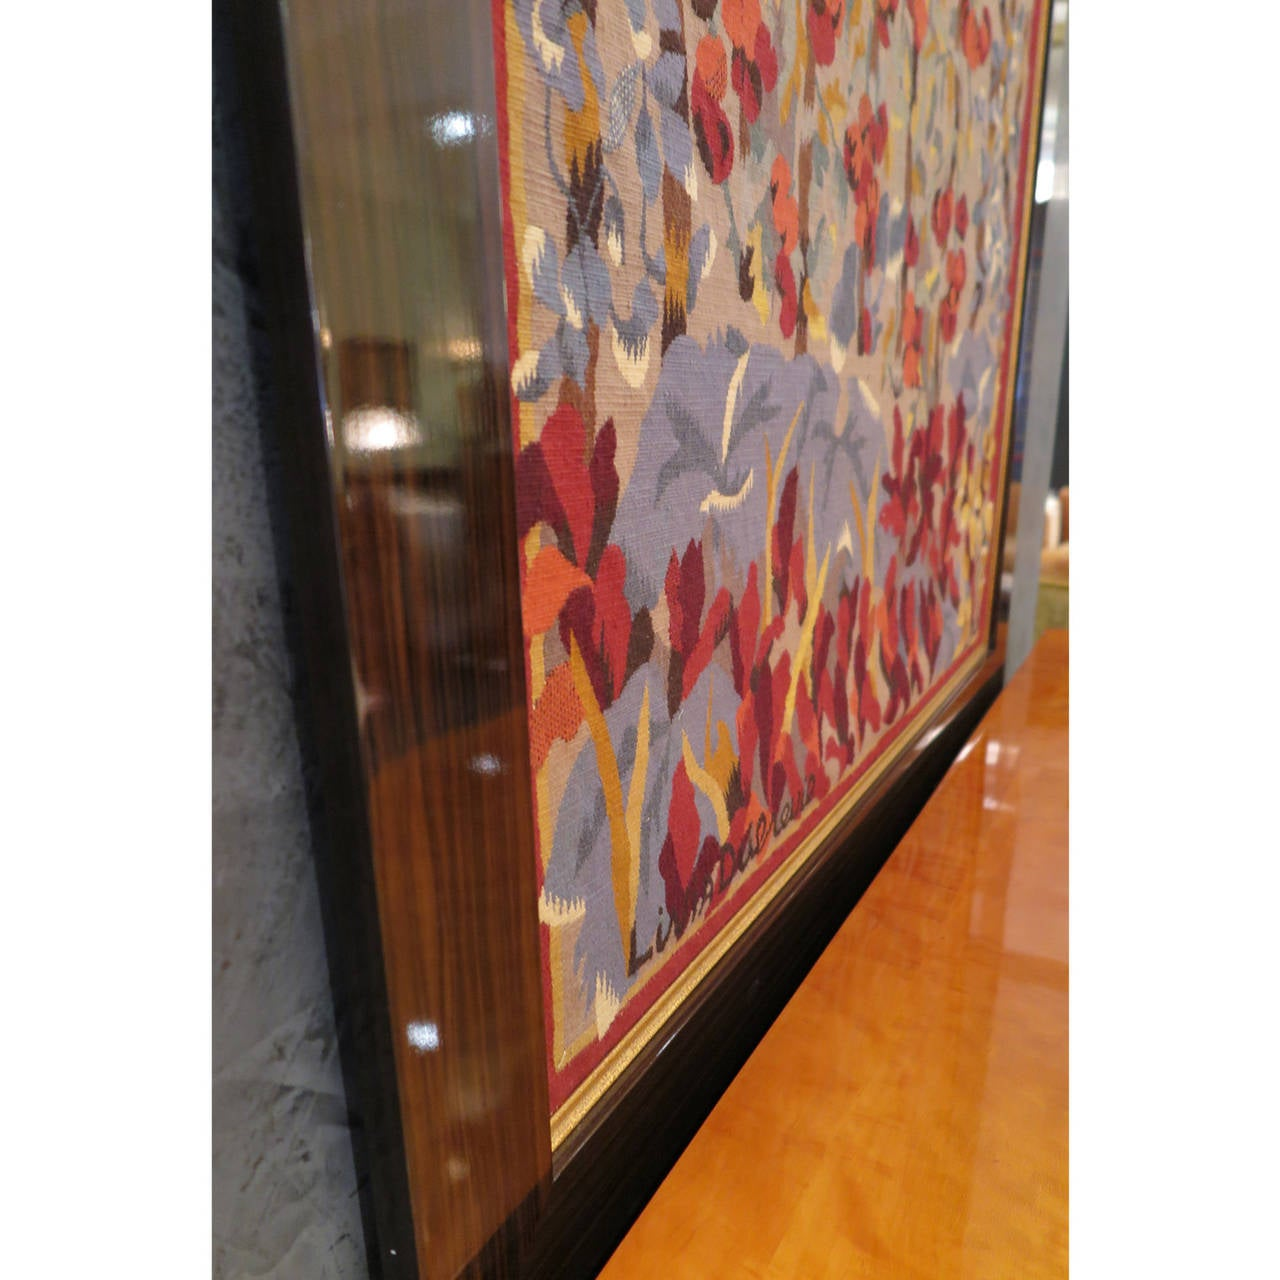 Beautiful woven Aubusson tapestry in wool stitch. Signed by Livia Dubreuil on bottom left, titled